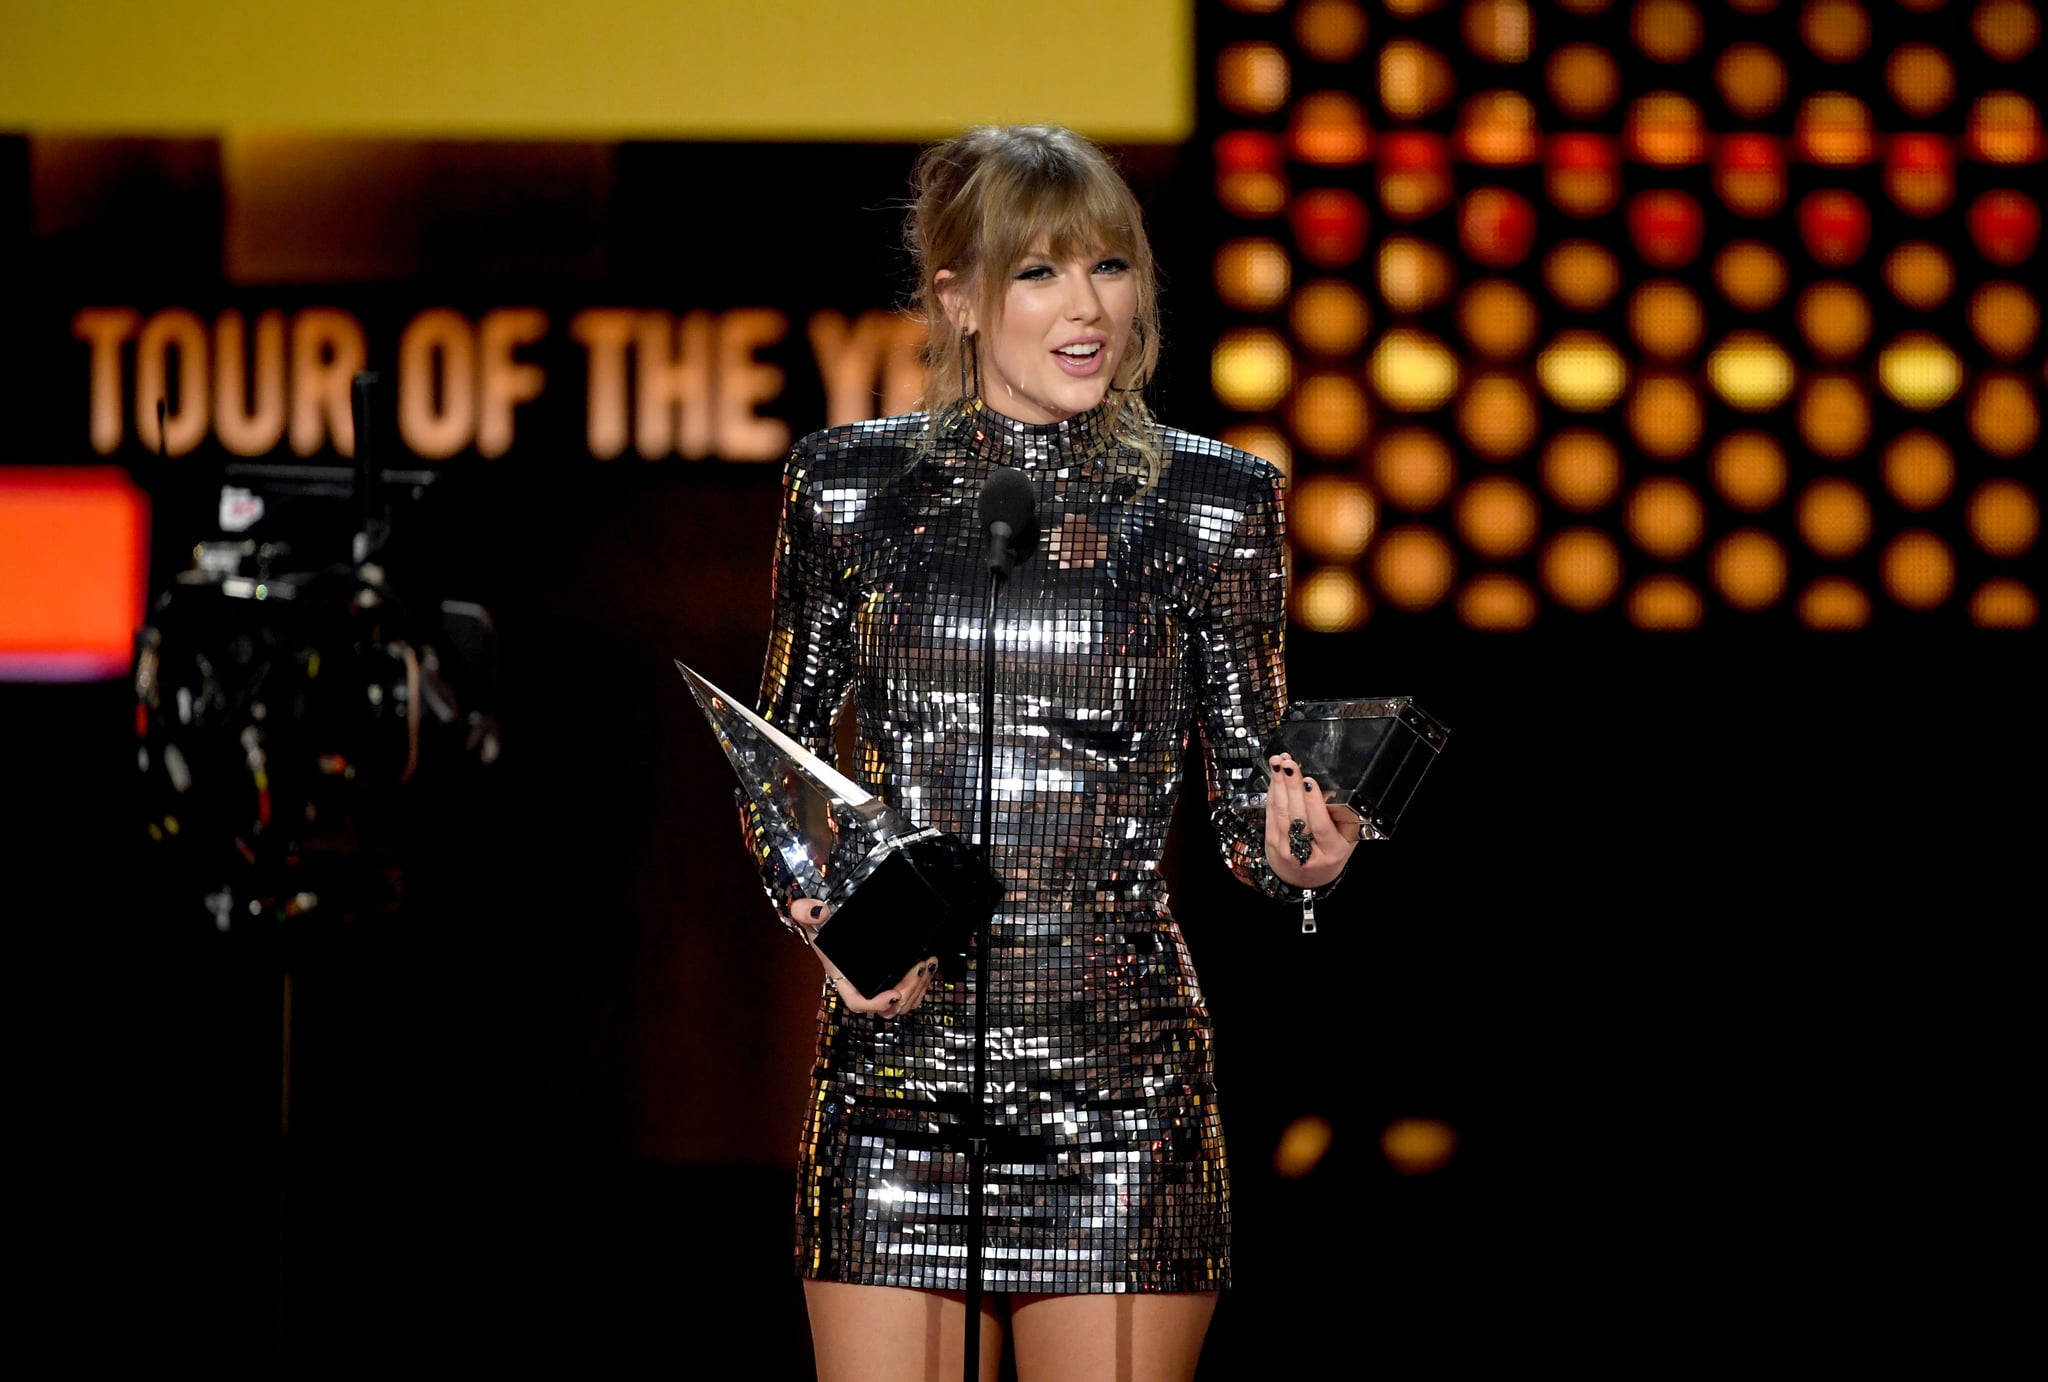 LOS ANGELES, CA - OCTOBER 09:  Taylor Swift accepts Tour of the Year for the Reputation Stadium Tour onstage during the 2018 American Music Awards at Microsoft Theater on October 9, 2018 in Los Angeles, California.  (Photo by Kevin Winter/Getty Images For dcp)